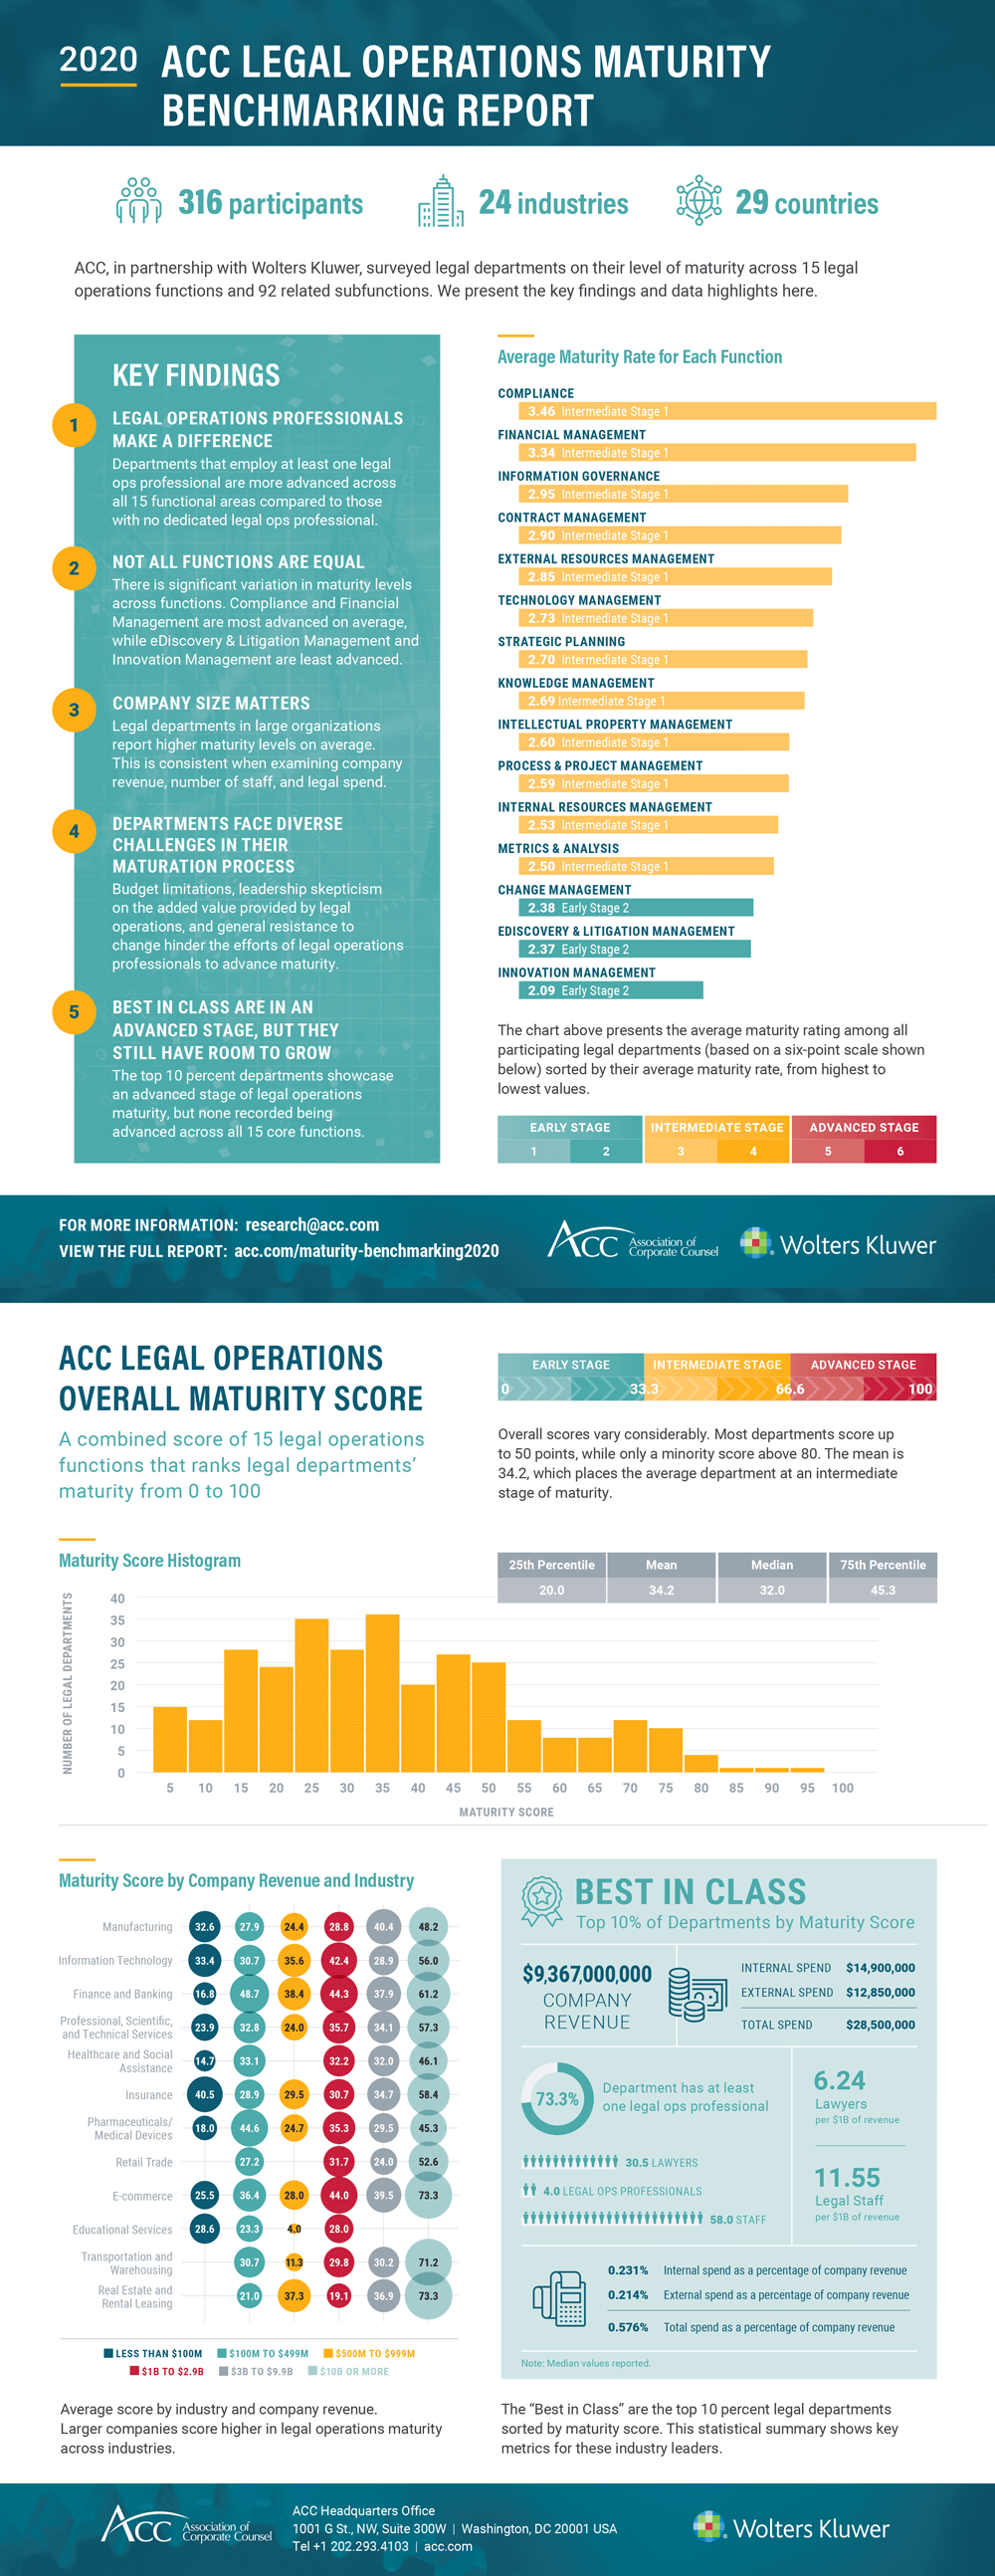 ACC Legal Ops Maturity Benchmarking Report Highlights